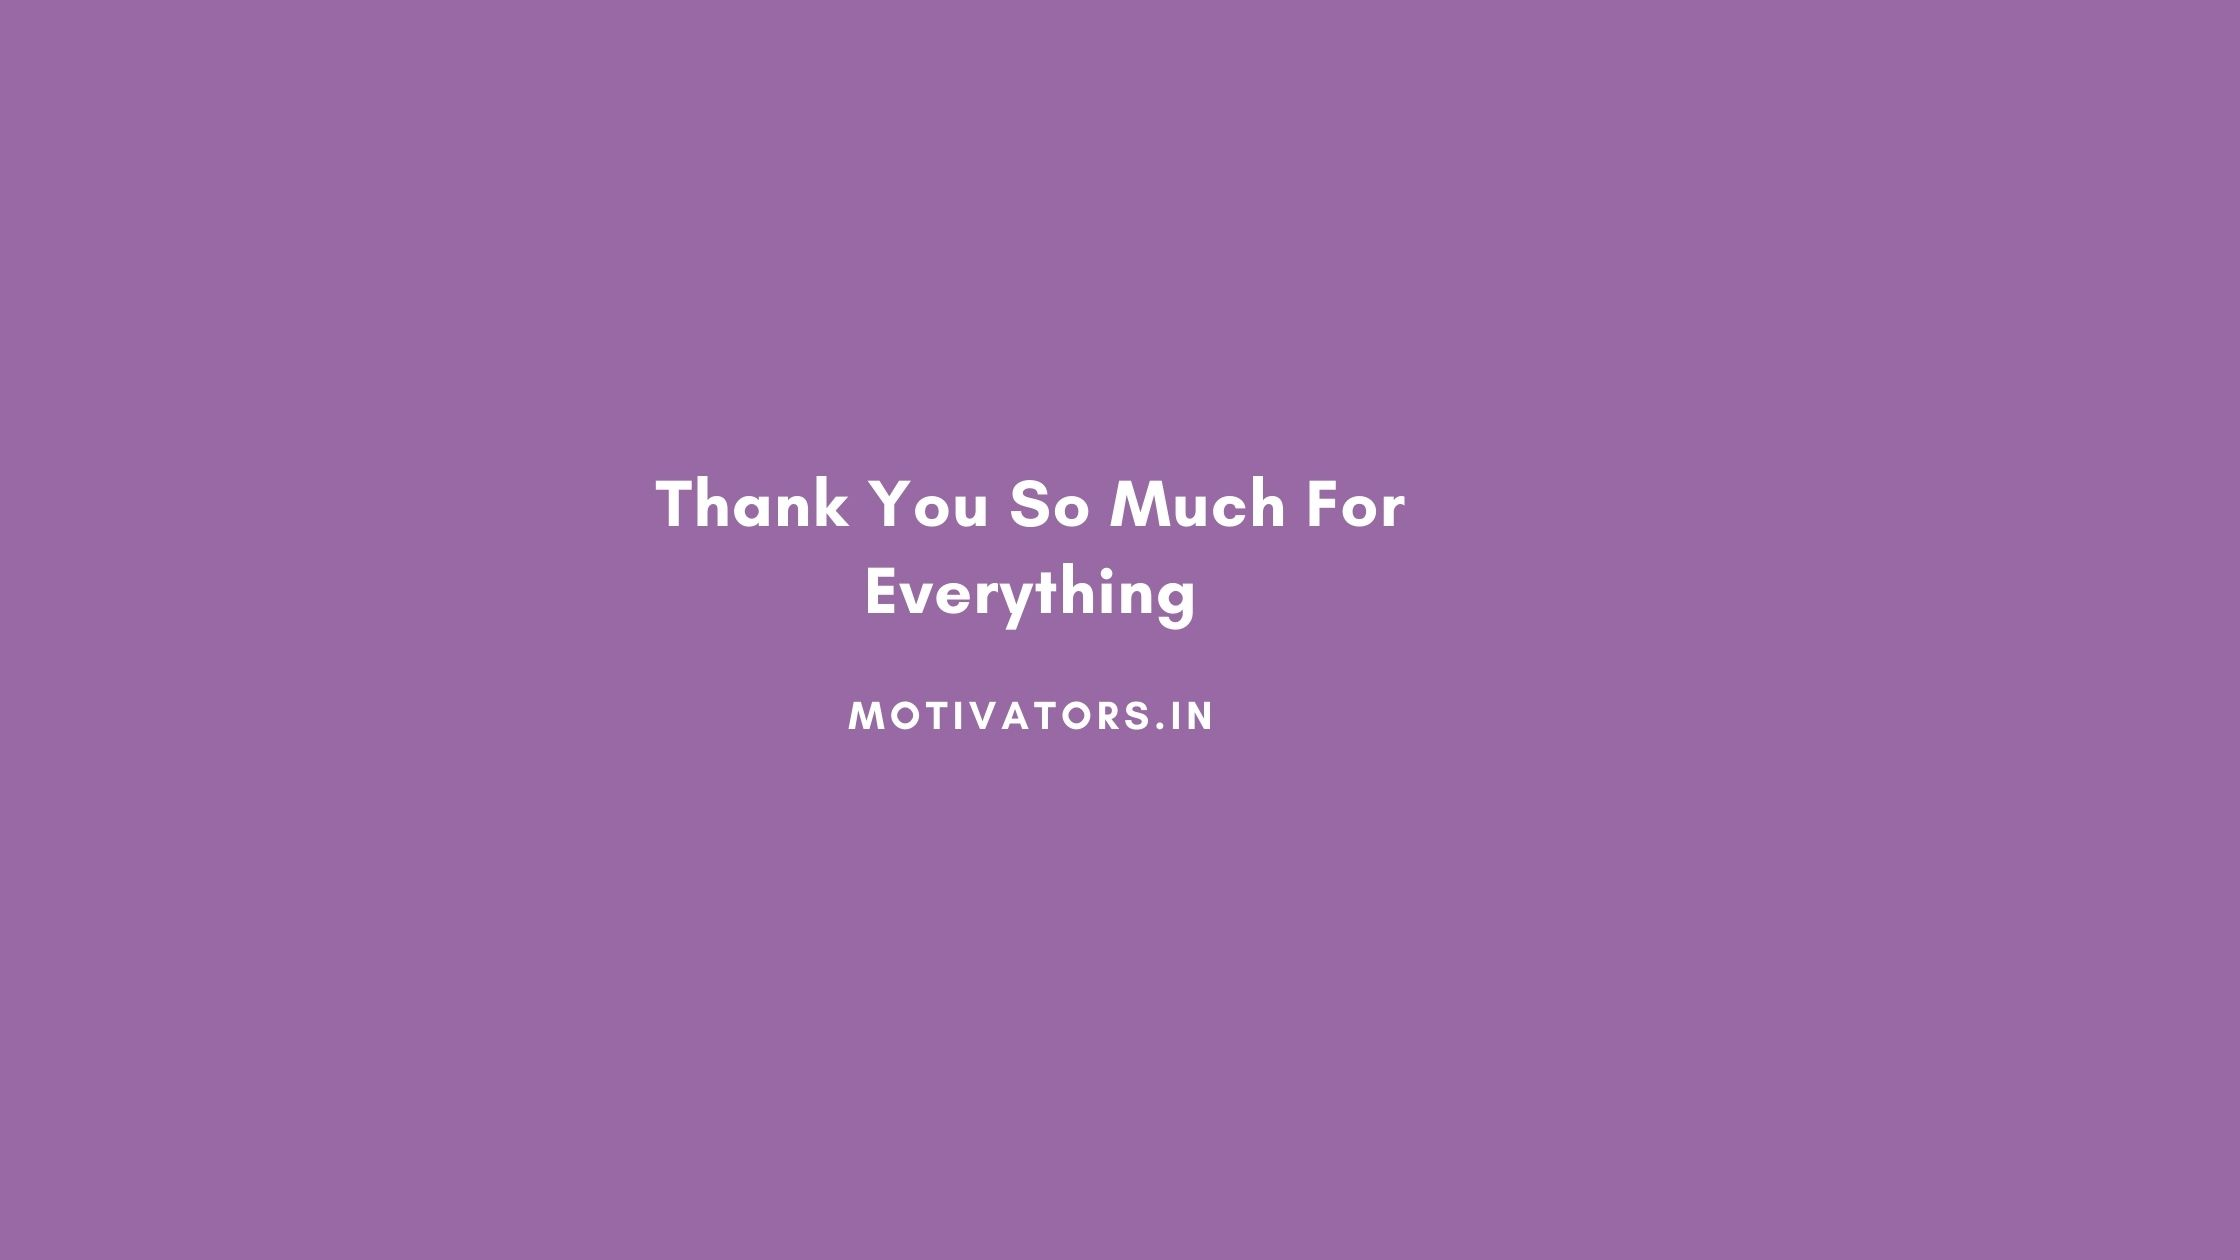 Thank You So Much For Everything